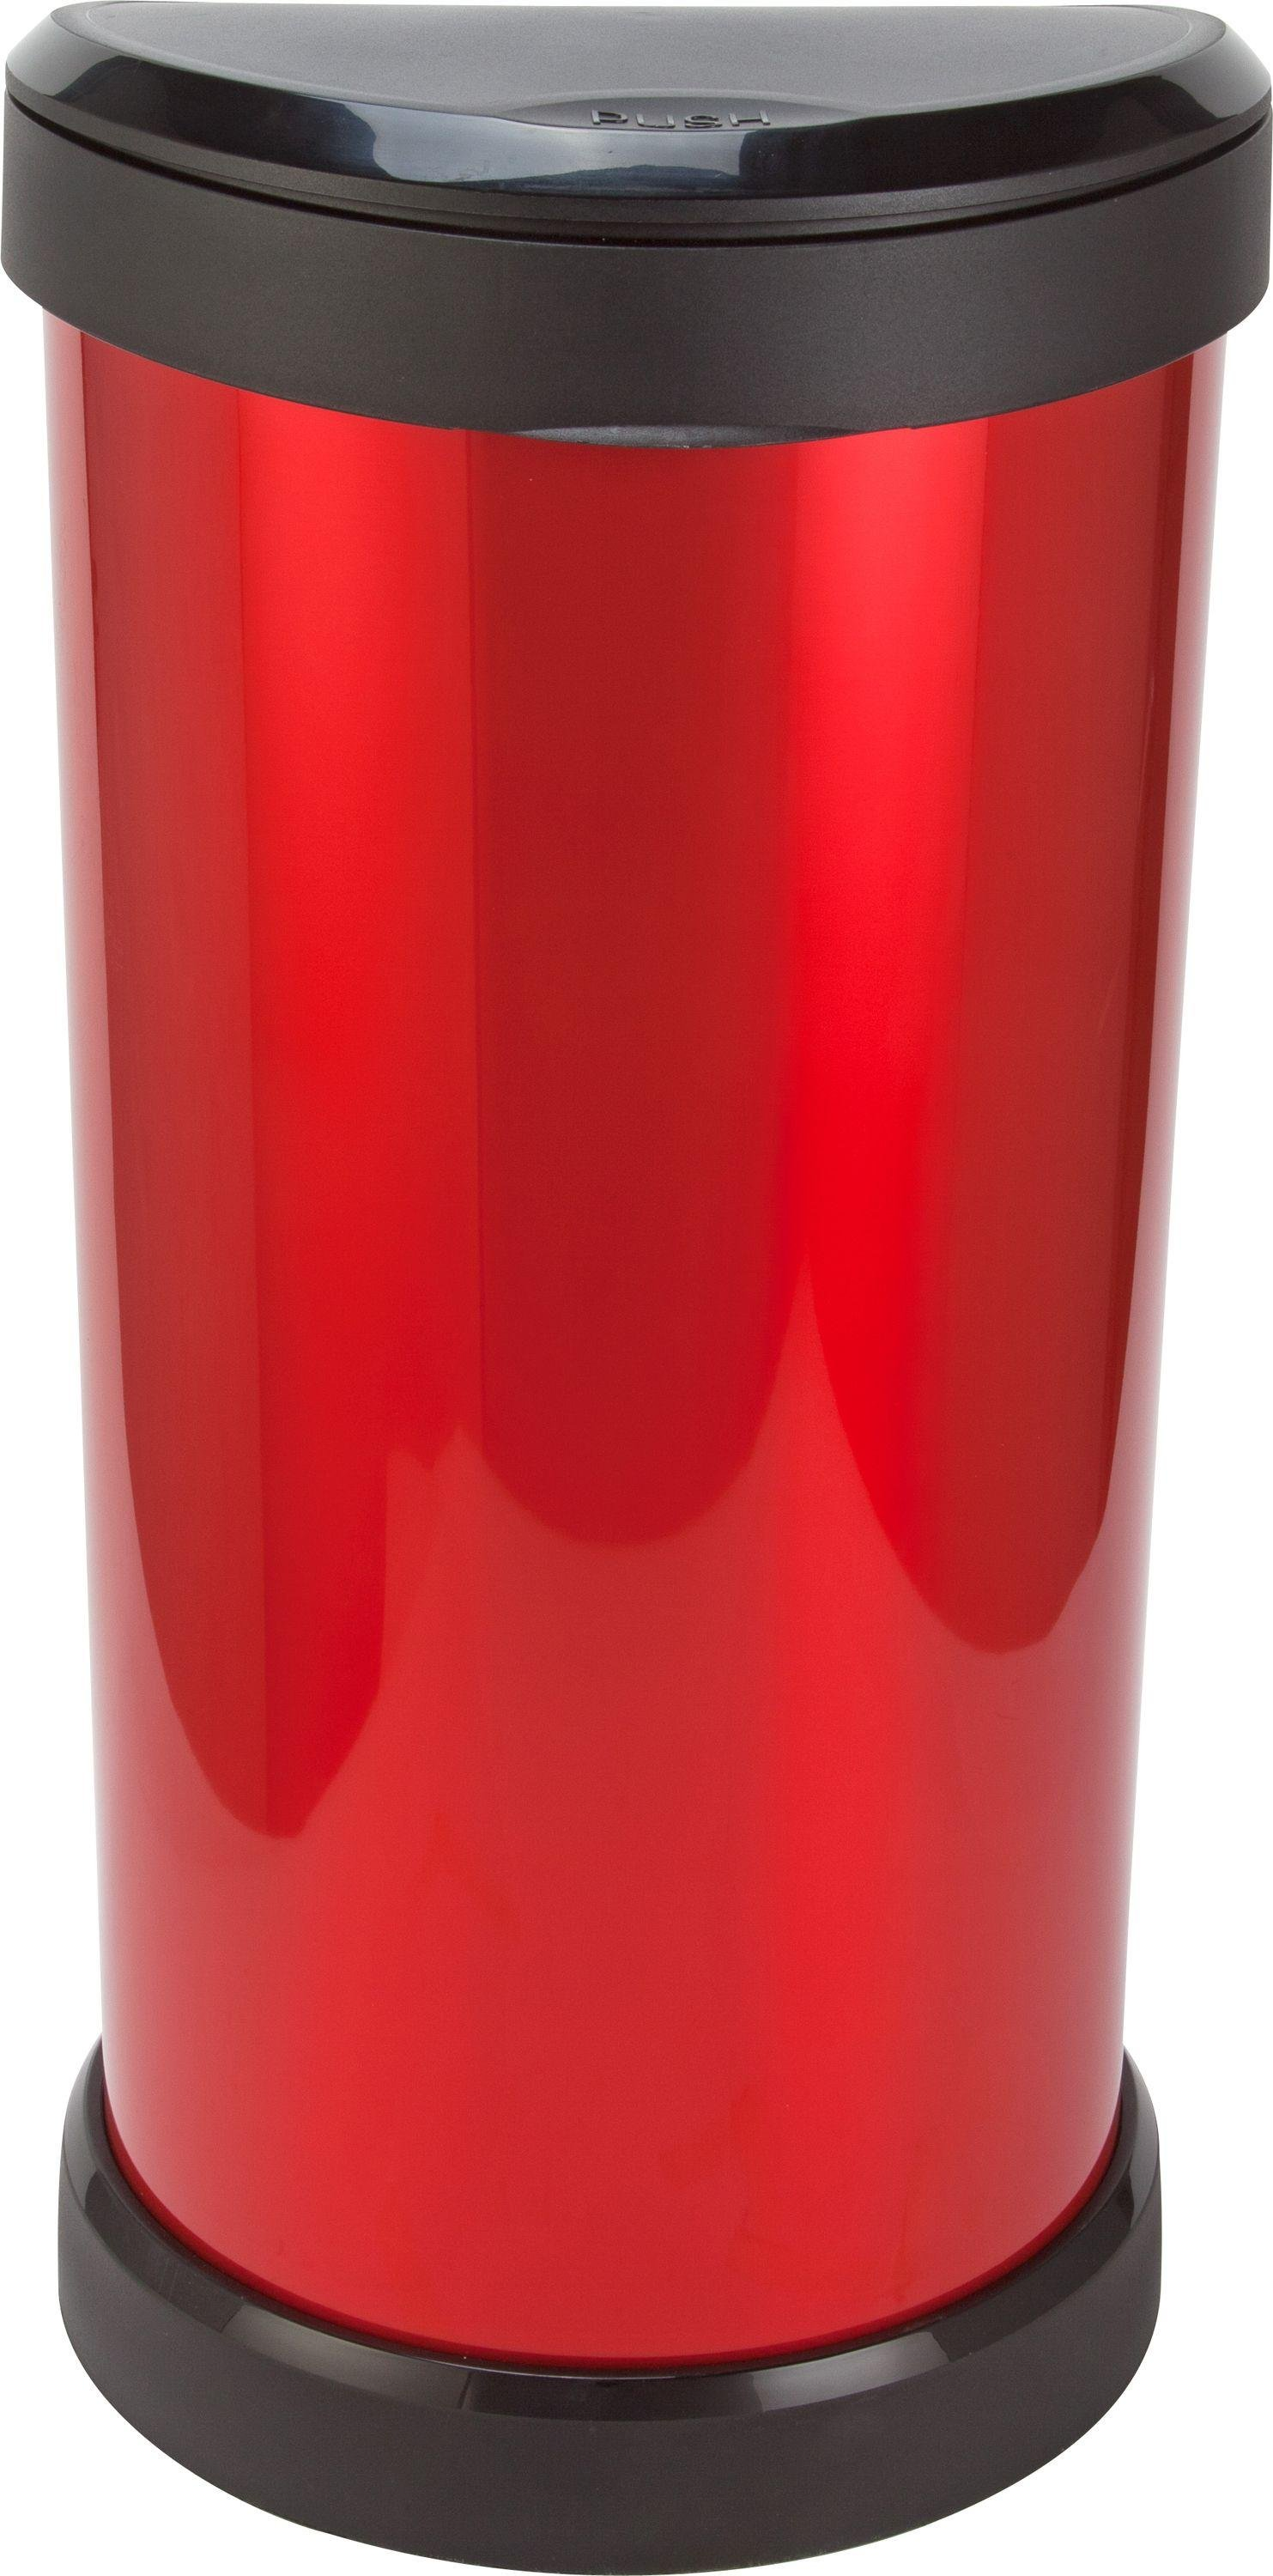 Image of Curver 40 Litre Deco Touch Top Kitchen Bin - Red and Black